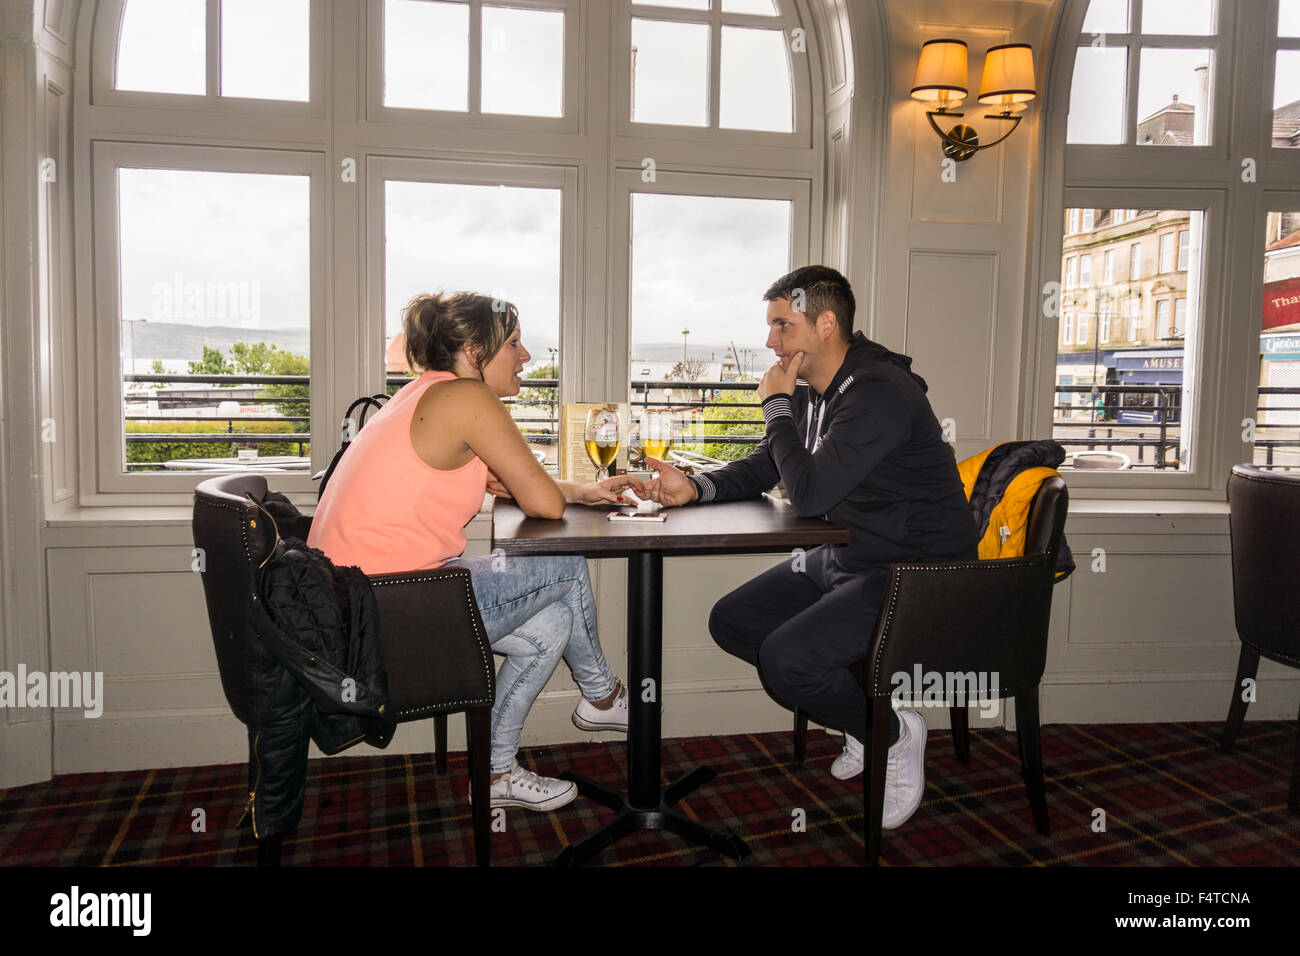 Young couple holding hands having serious relaxed conversation at pub in Argyll Hotel, Dunoon, Scotland.   ©Myrleen - Stock Image